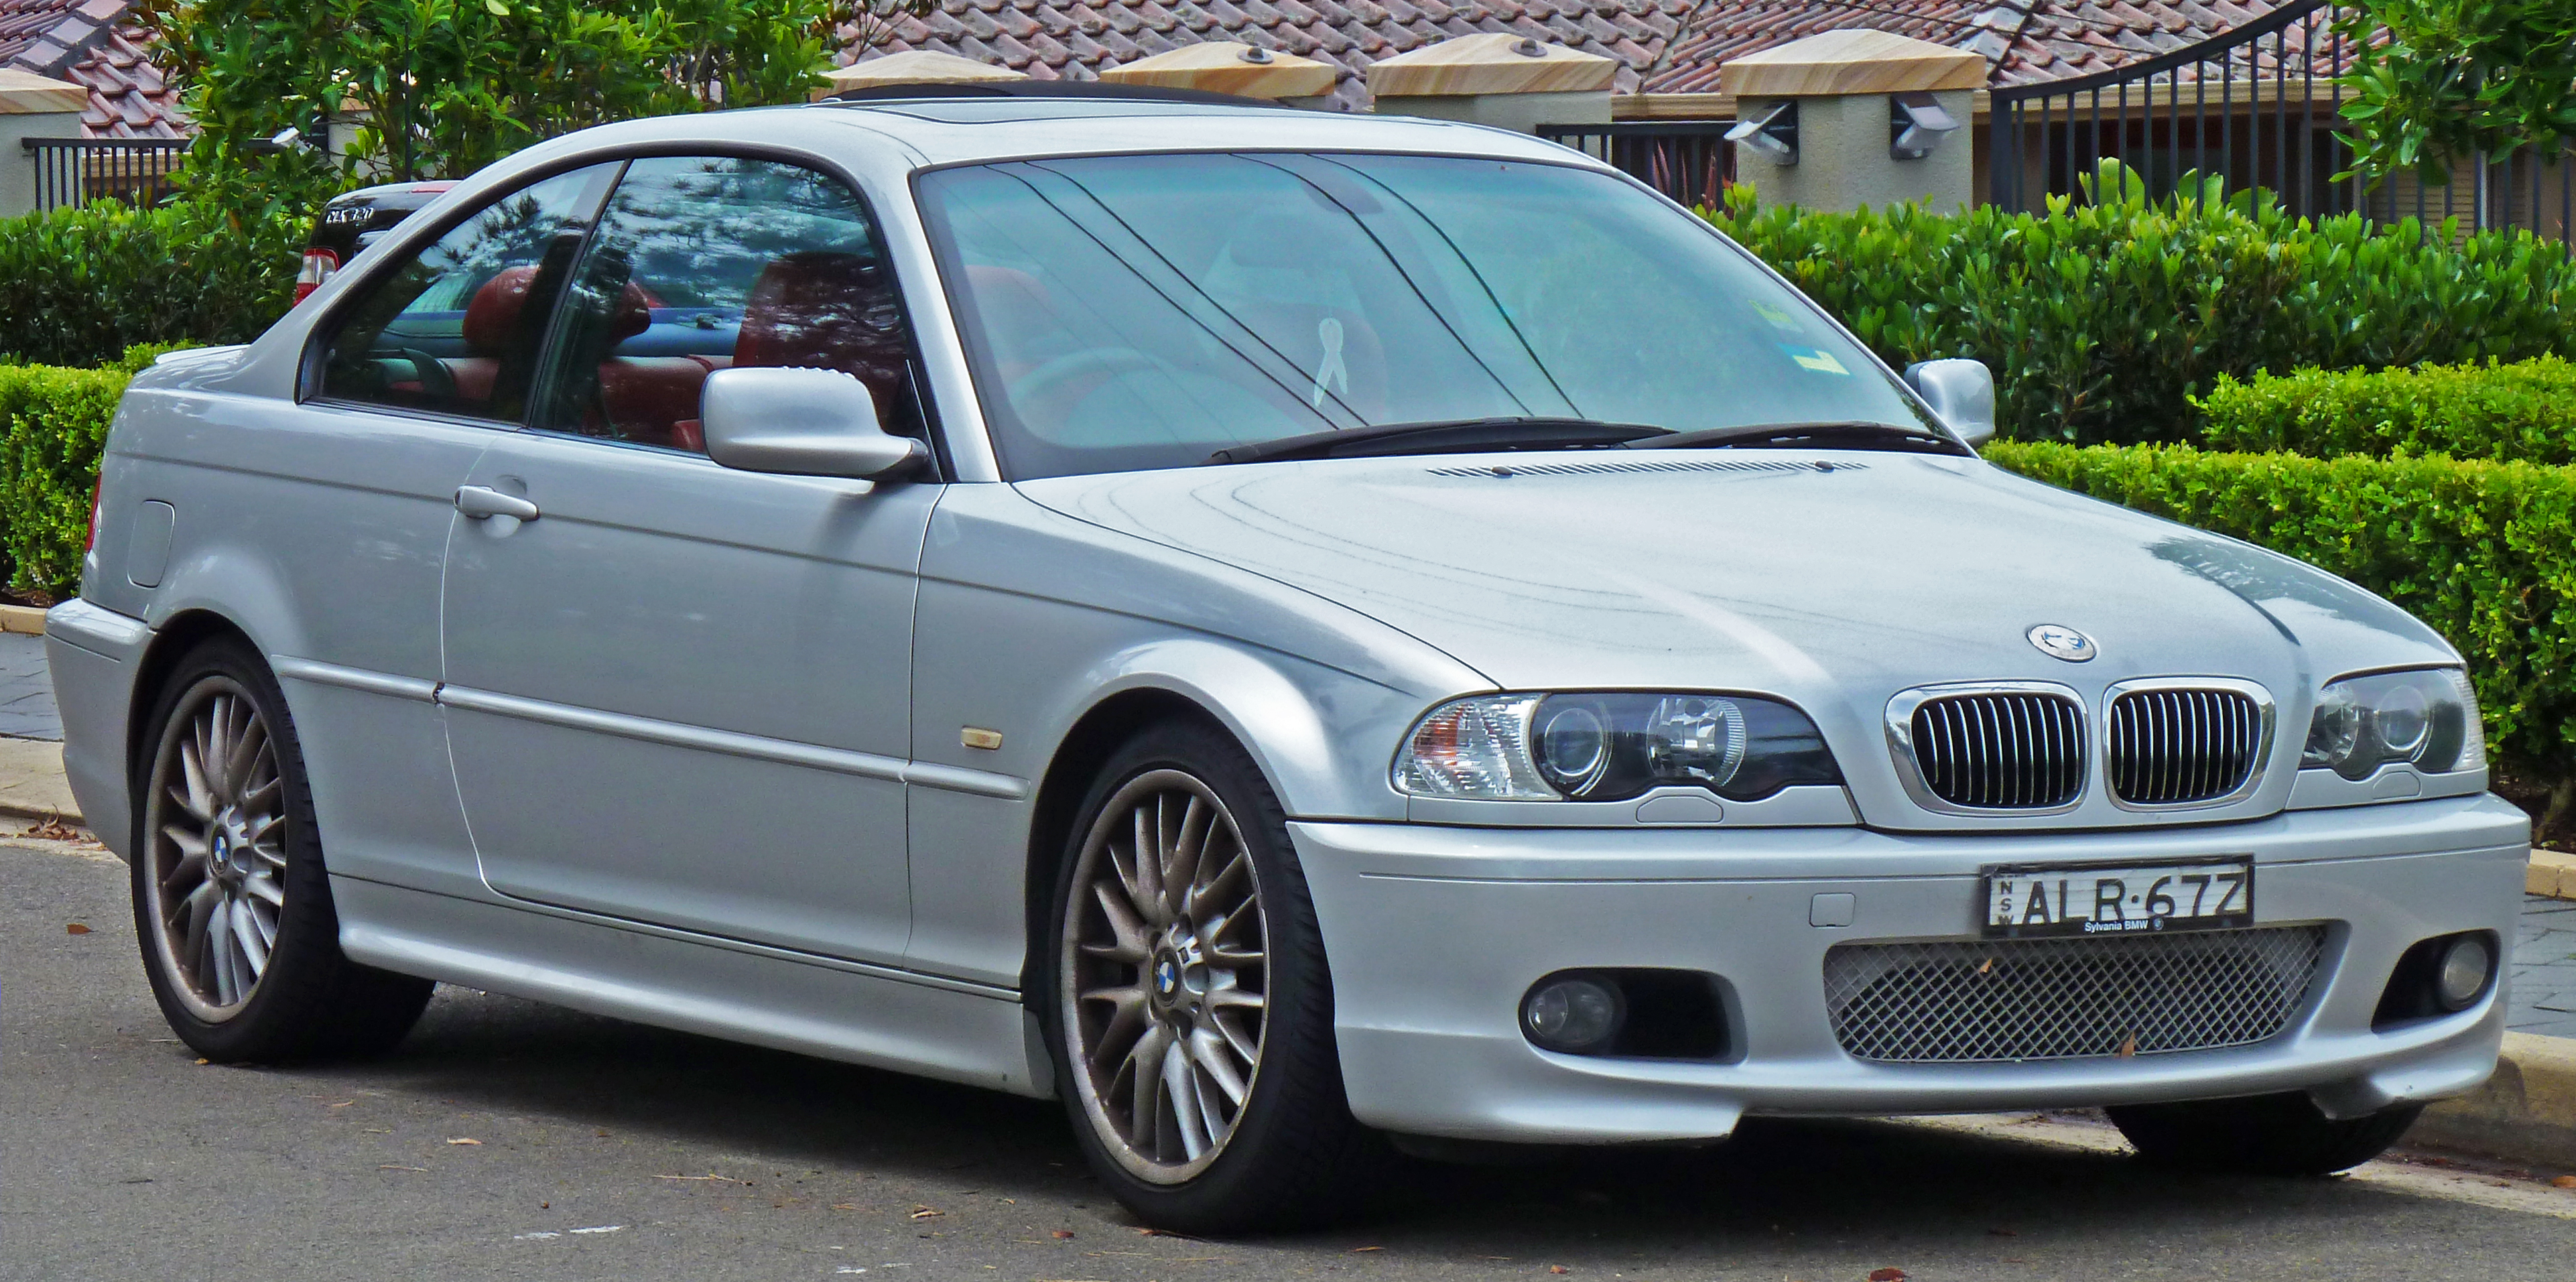 Bmw 318 Ci Coupe E46 2001